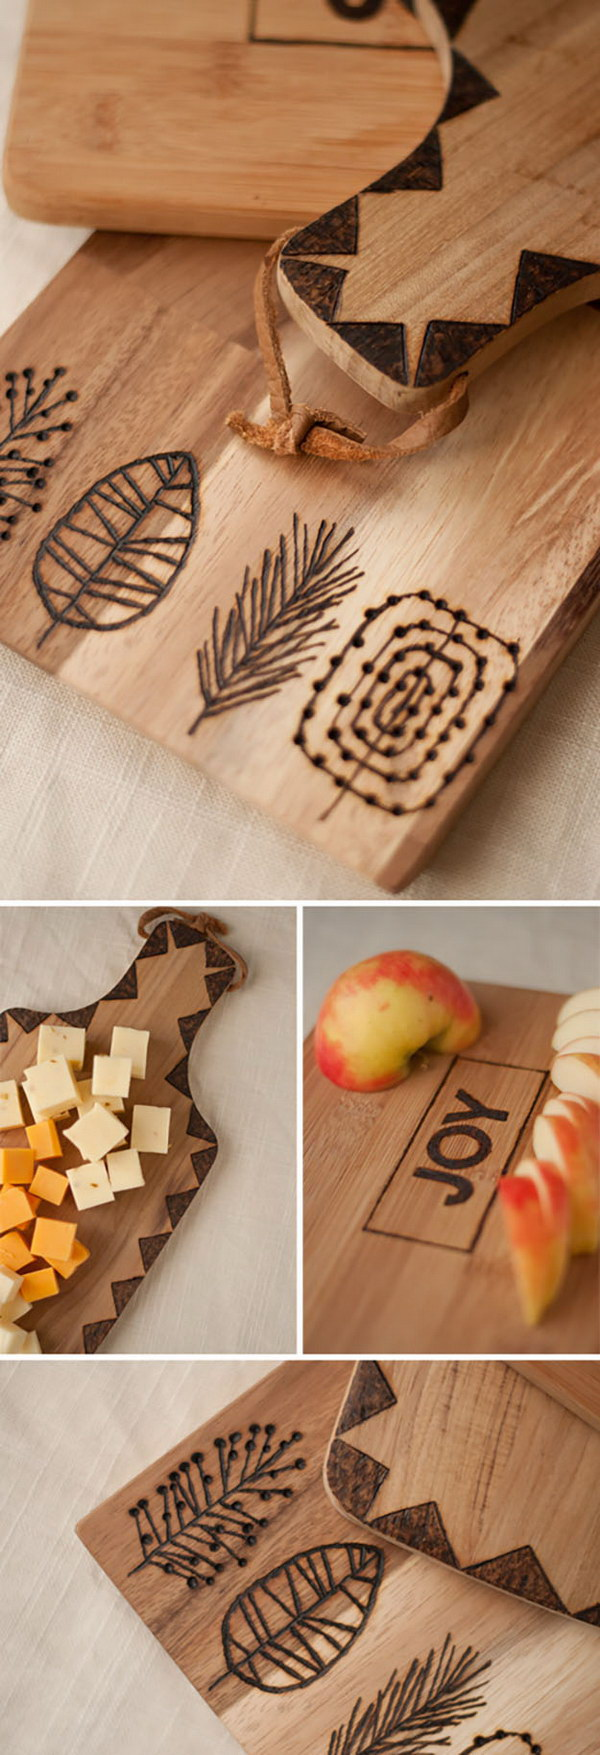 Diy personalized gifts for your loved ones hative for Diy personalized wood cutting board